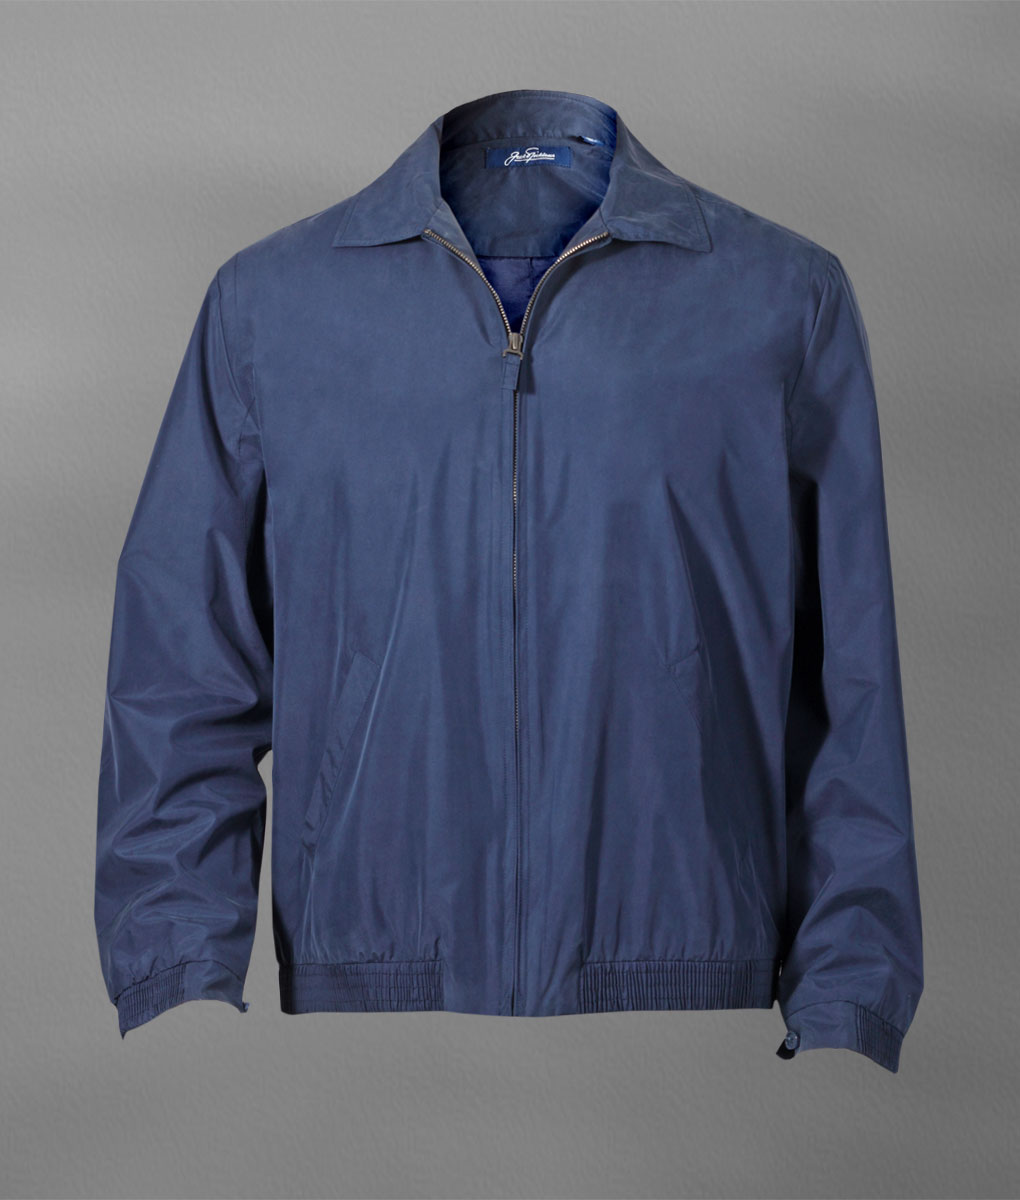 Navy 107364 - Classic Windbreaker Jacket